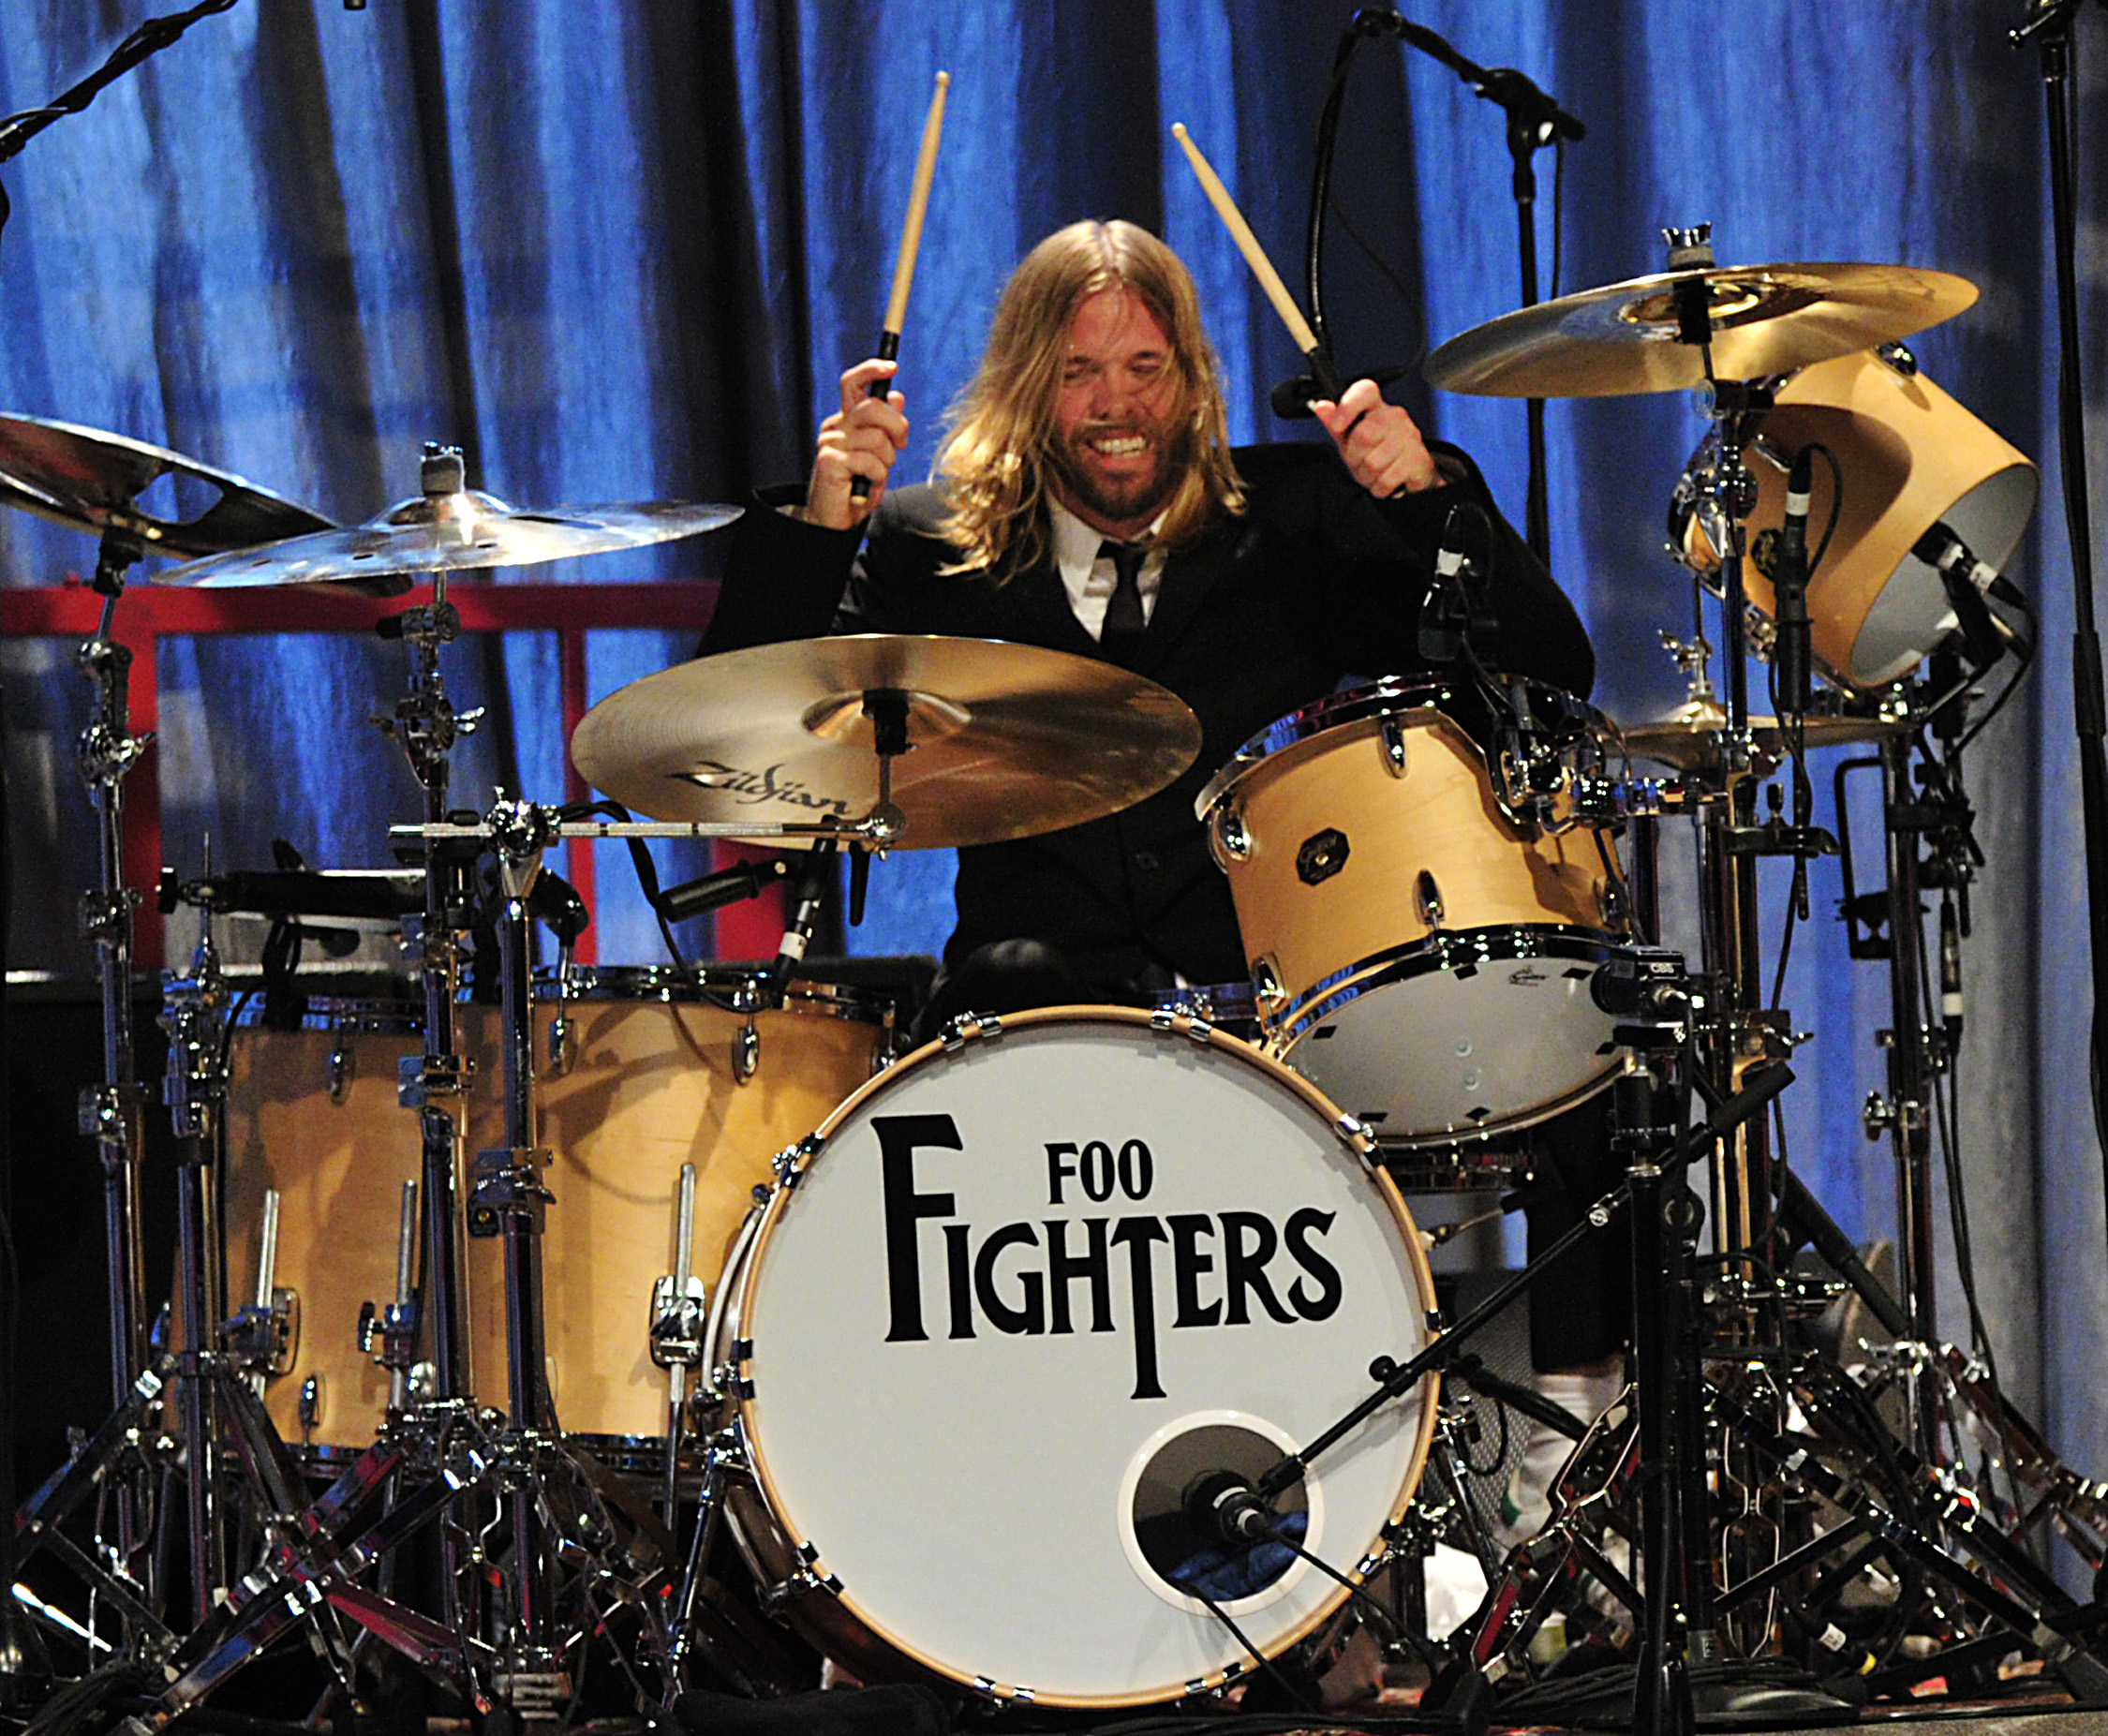 Taylor Hawkins Foo Fighters The Beatles Logo Drum kit